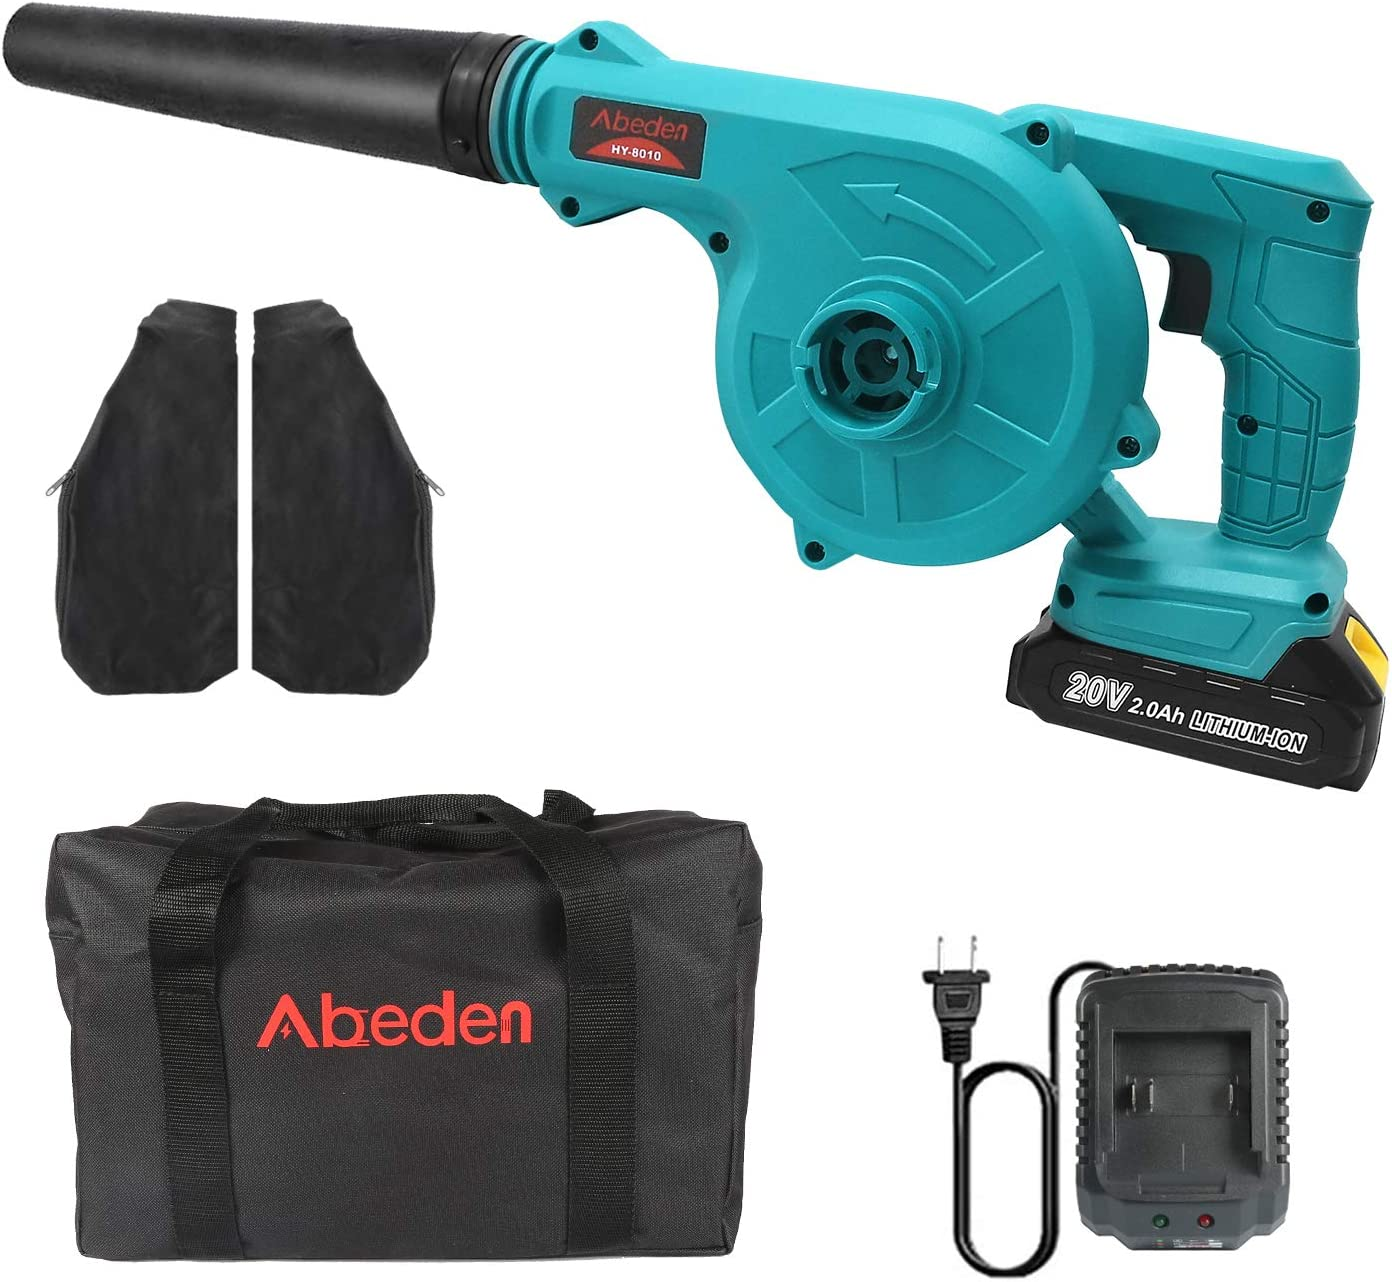 Abeden Cordless Leaf Blower, 2-in-1 Electric Handheld Sweeper/Vacuum 20V 2.0 Ah Lithium Battery for Blowing Leaf,Clearing Dust & Small Trash,Car,Computer Host,Hard to Clean Corner